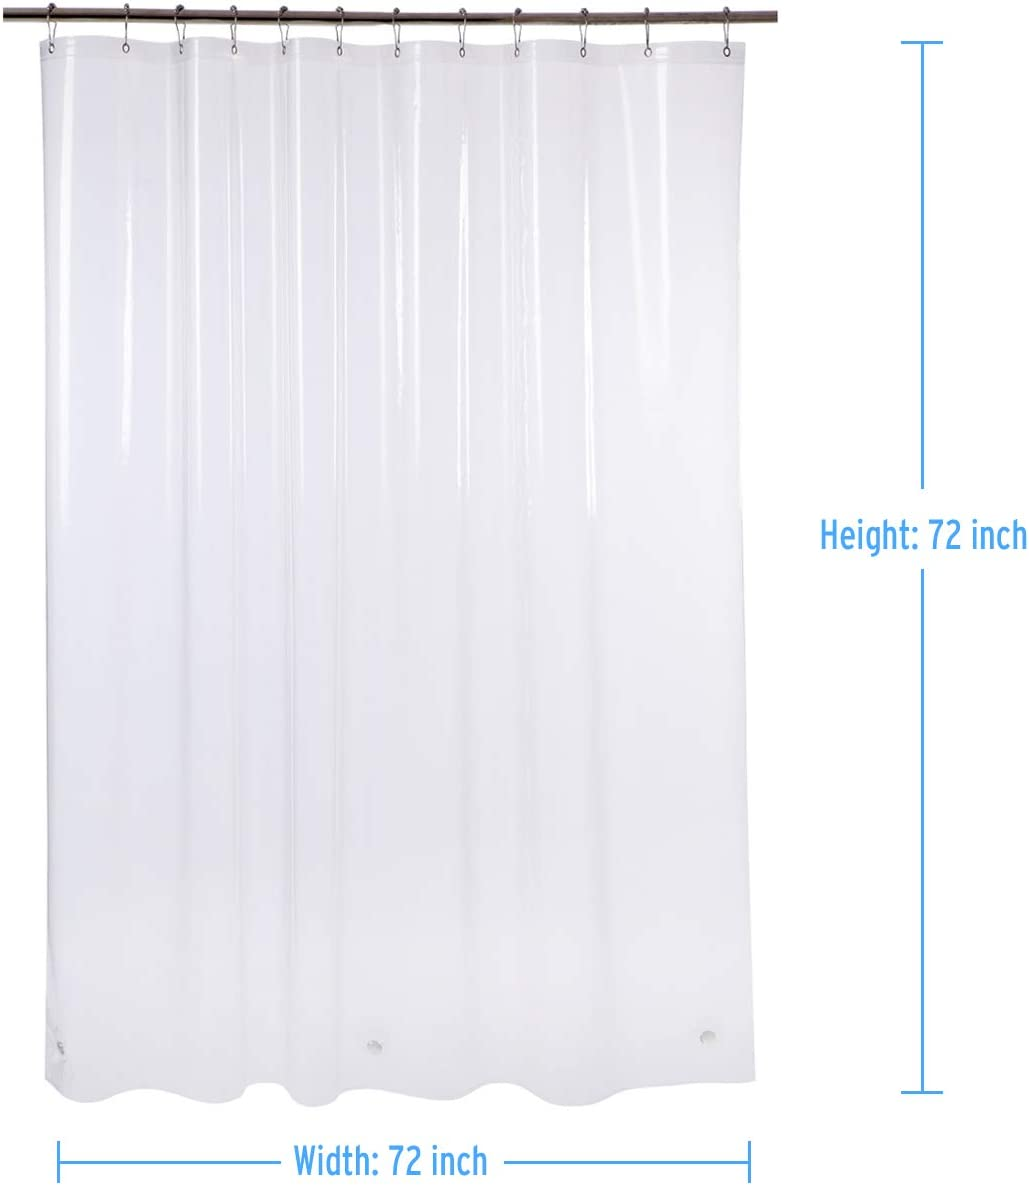 "AmazerBath Plastic Shower Curtain, 72"" W x 72"" H EVA 8G Shower Curtain with Heavy Duty Clear Stones and 12 Grommet Holes Thick Bathroom Plastic Shower Curtains-Clear: Home & Kitchen"